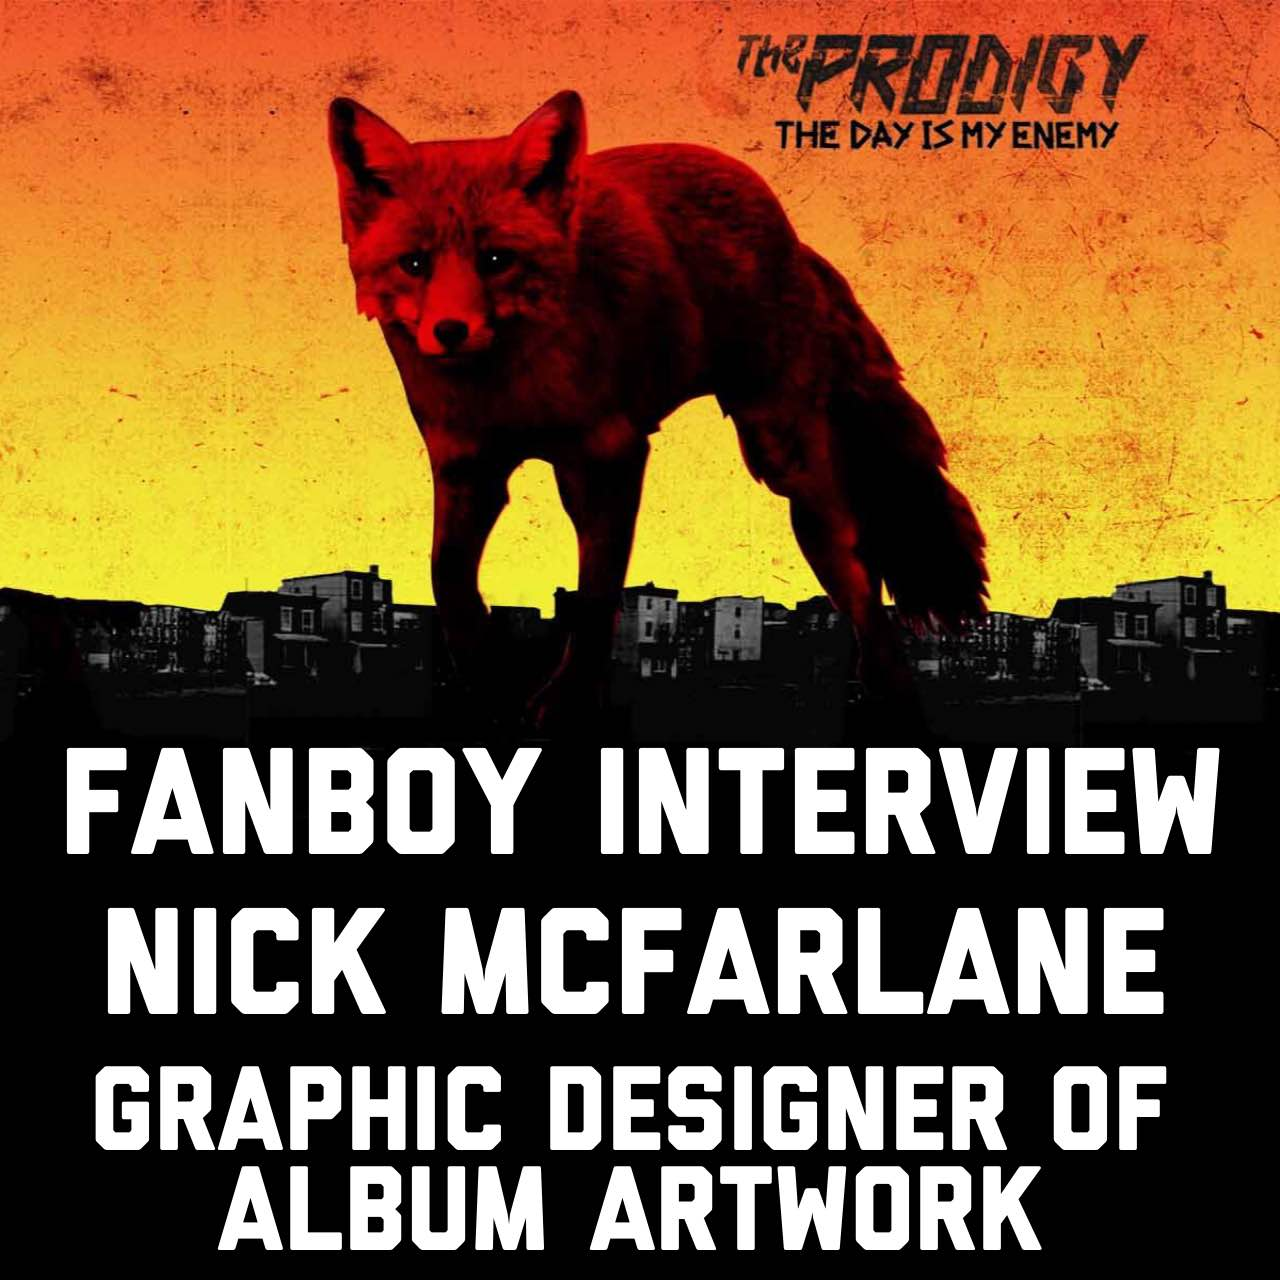 Interview with Nick McFarlane Graphic Designer of The Day Is My Enemy Album Cover